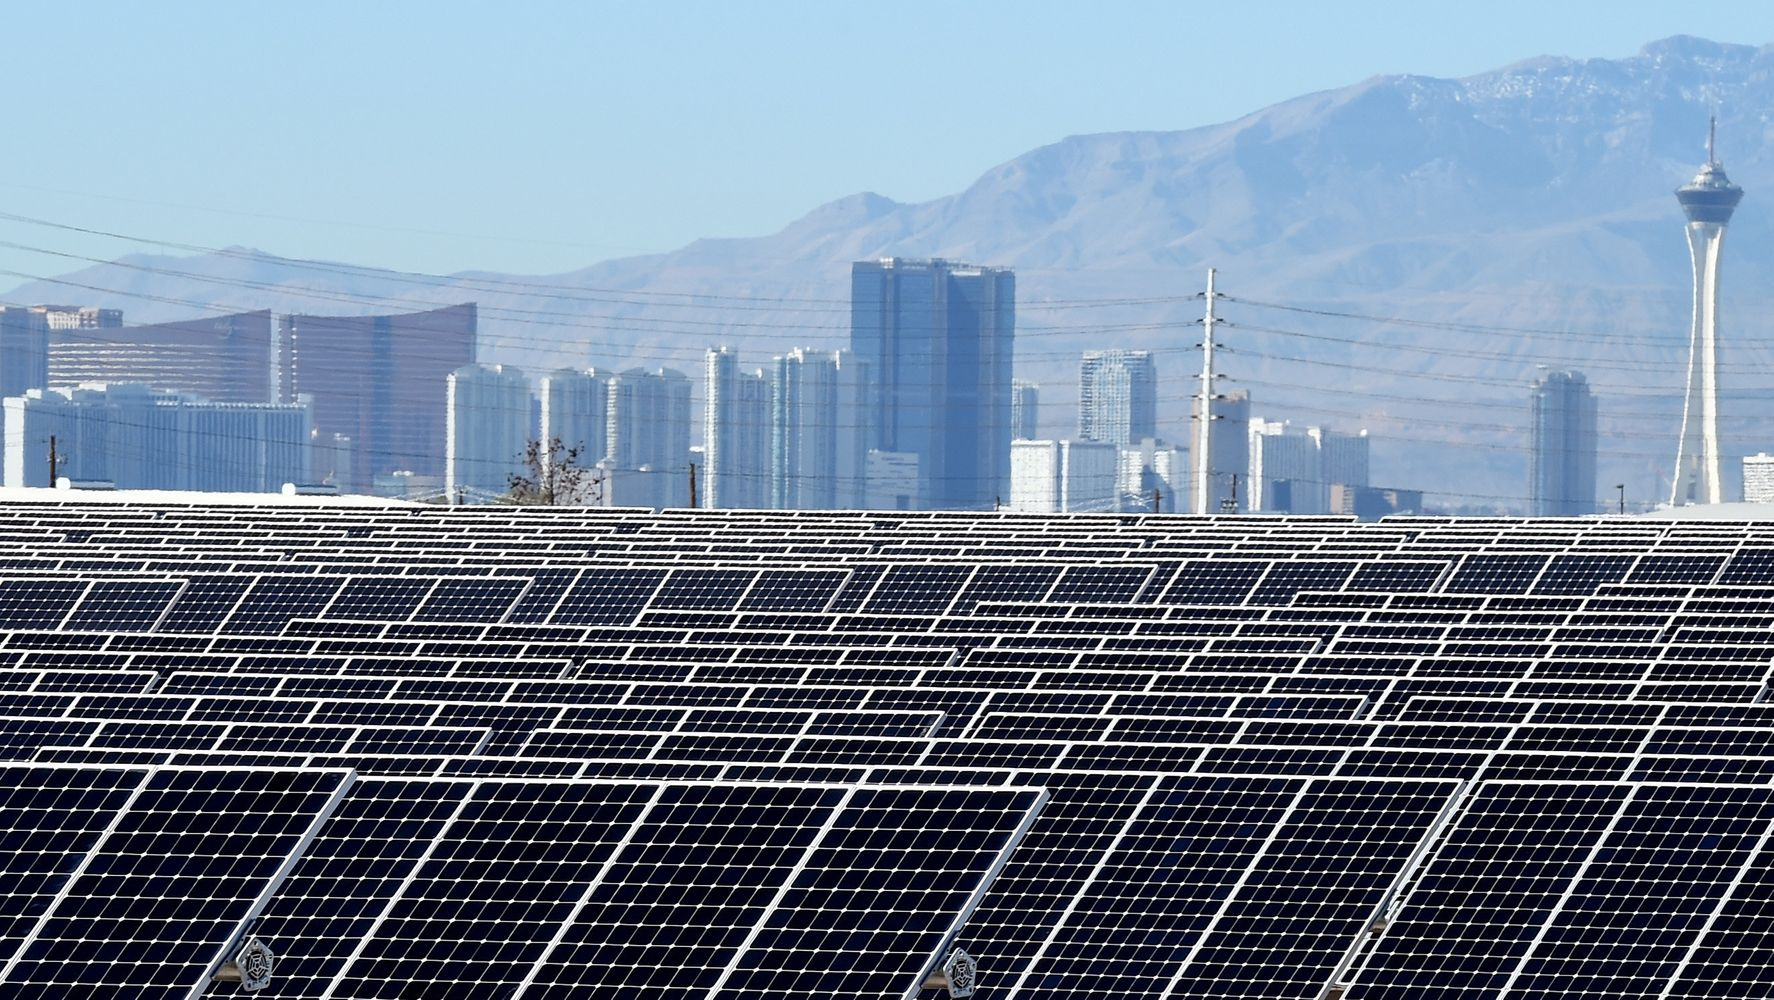 The City Of Las Vegas Is Now Powered Entirely By Renewable Energy